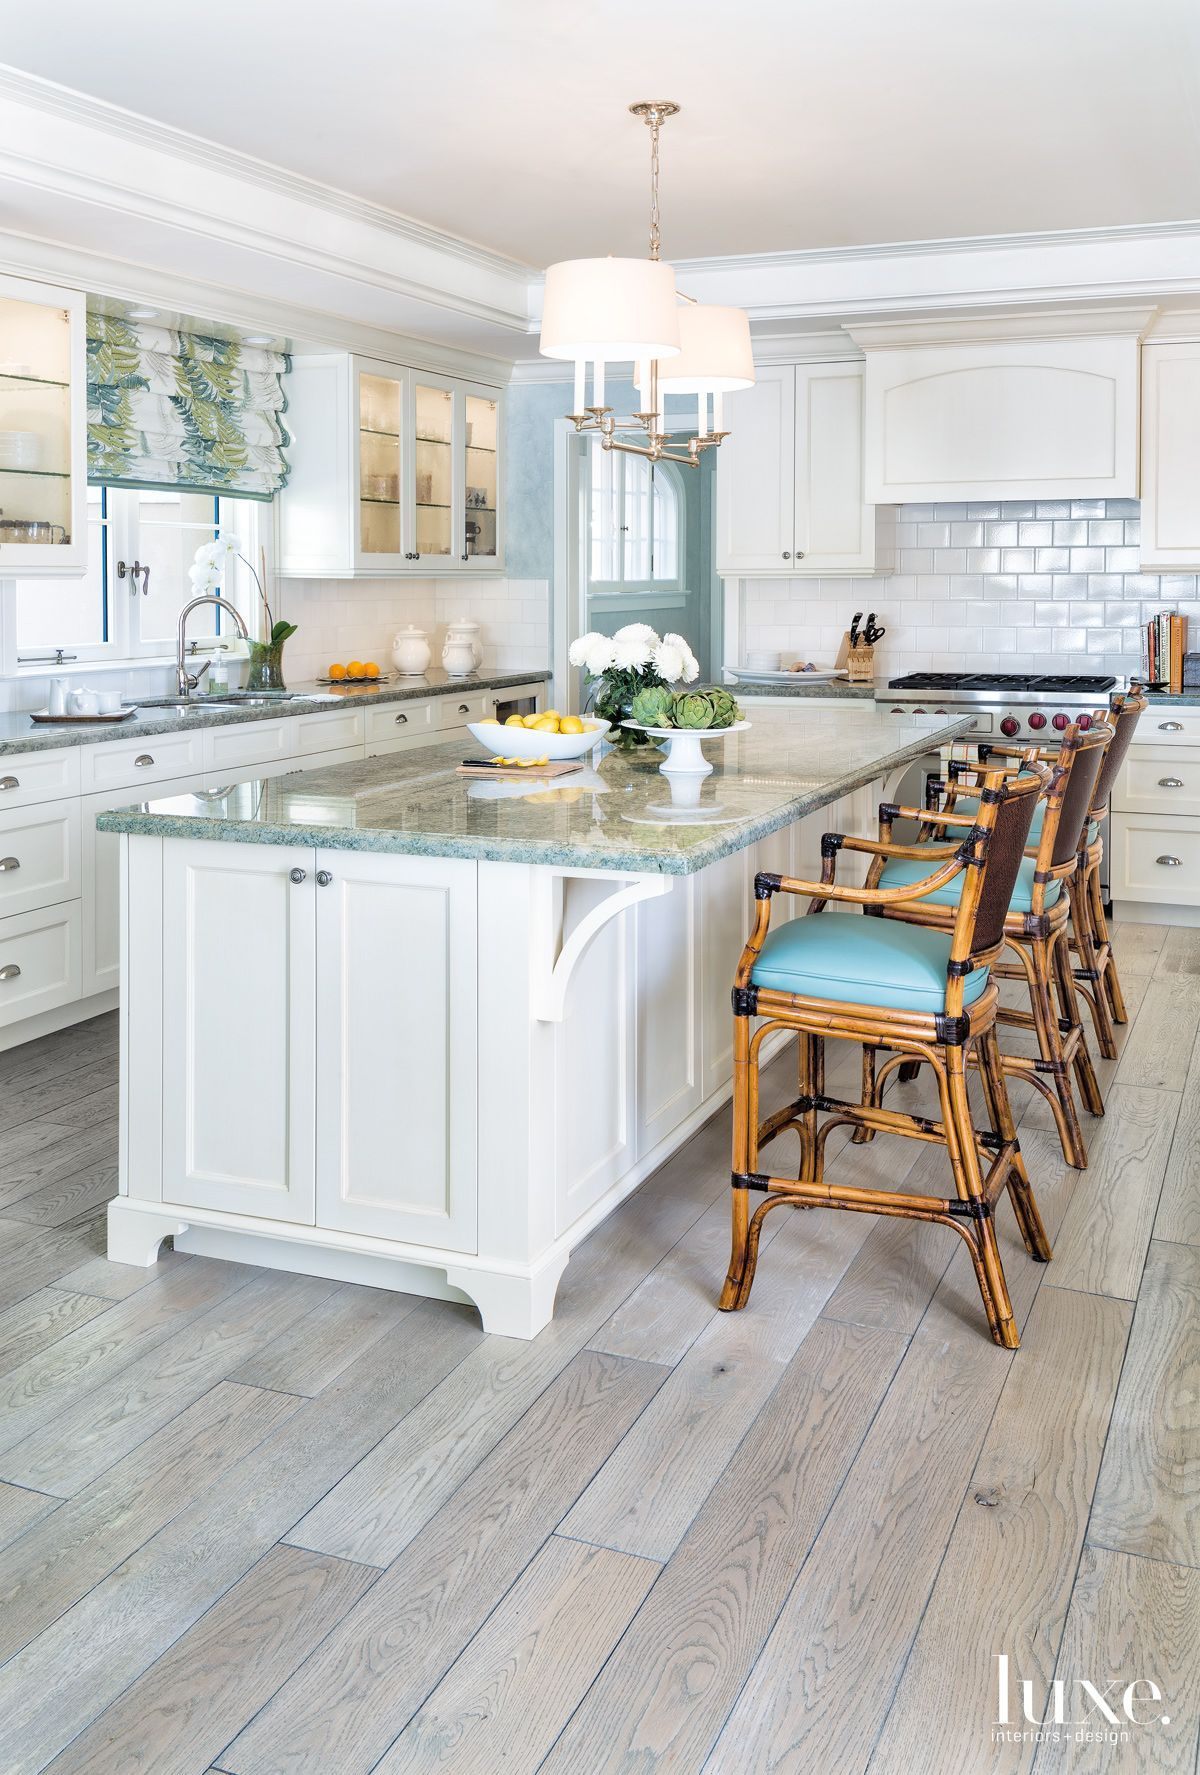 Traditional Cream Kitchen With Glazed Cabinetry Beach House Kitchens Interior Design Kitchen Kitchen Interior